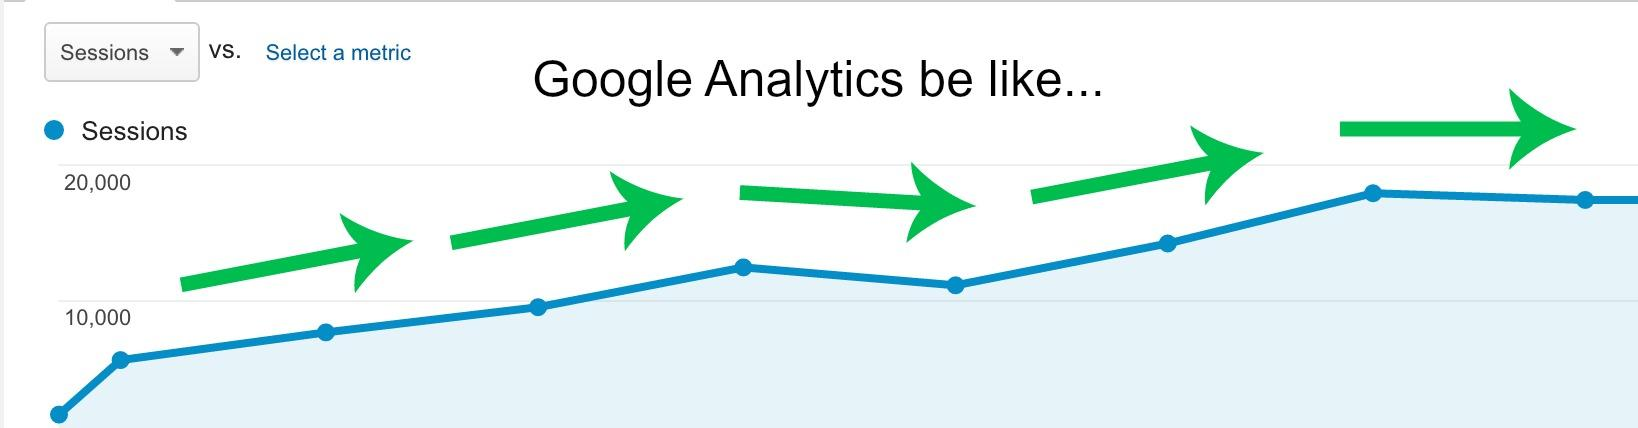 Screenshot showing Google Analytics displaying different results